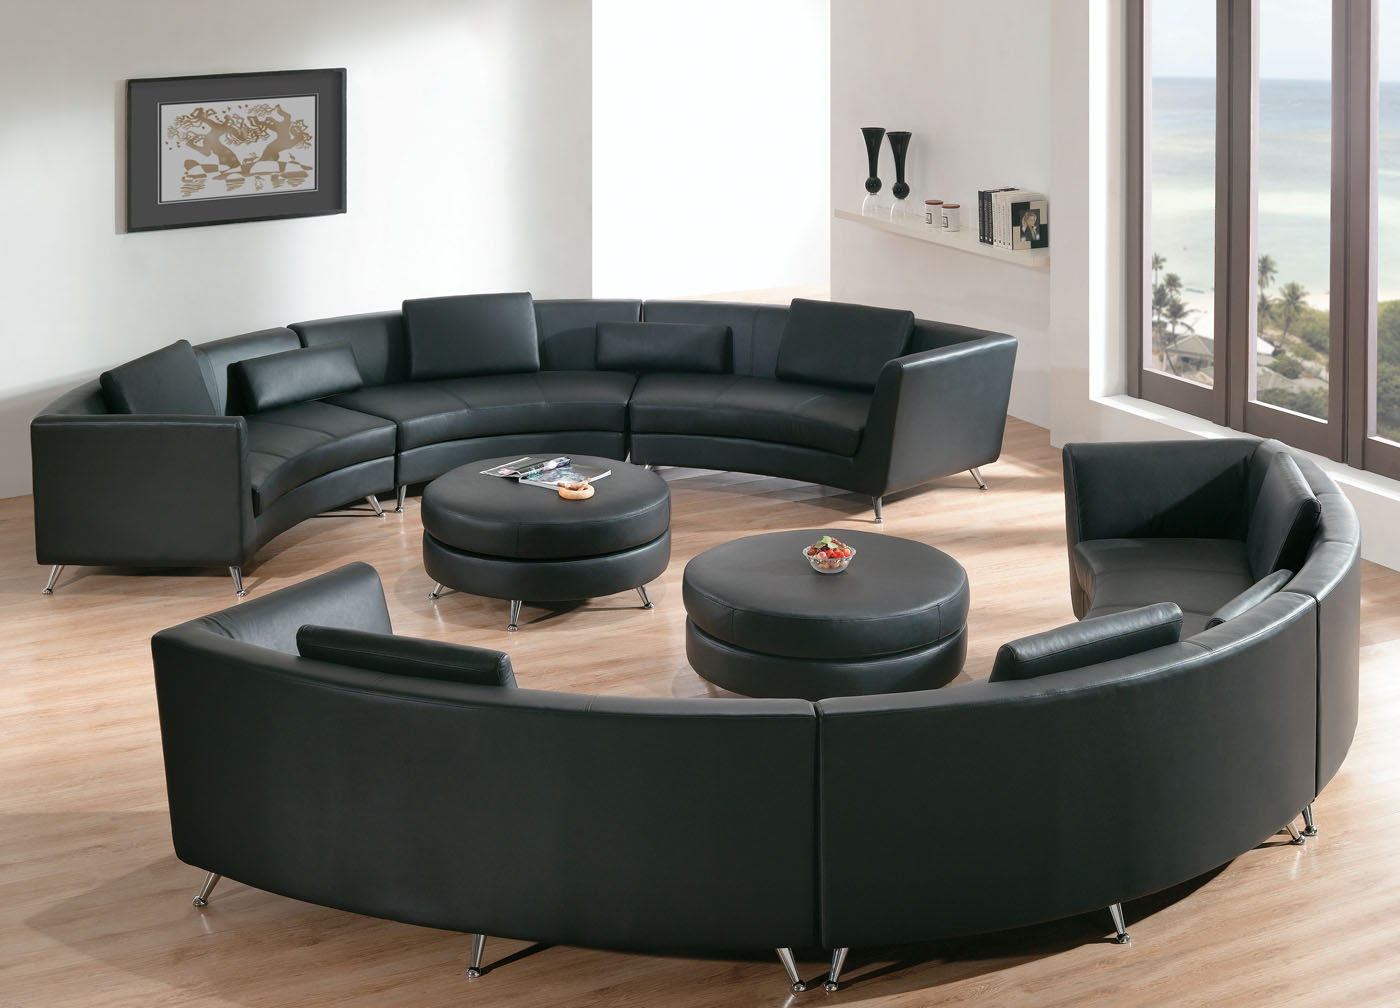 Round Sofa Chair Living Room Furniture With Regard To Most Up To Date Impressive Chic Living Room With Leather Round Sectional Sofa With (View 16 of 20)